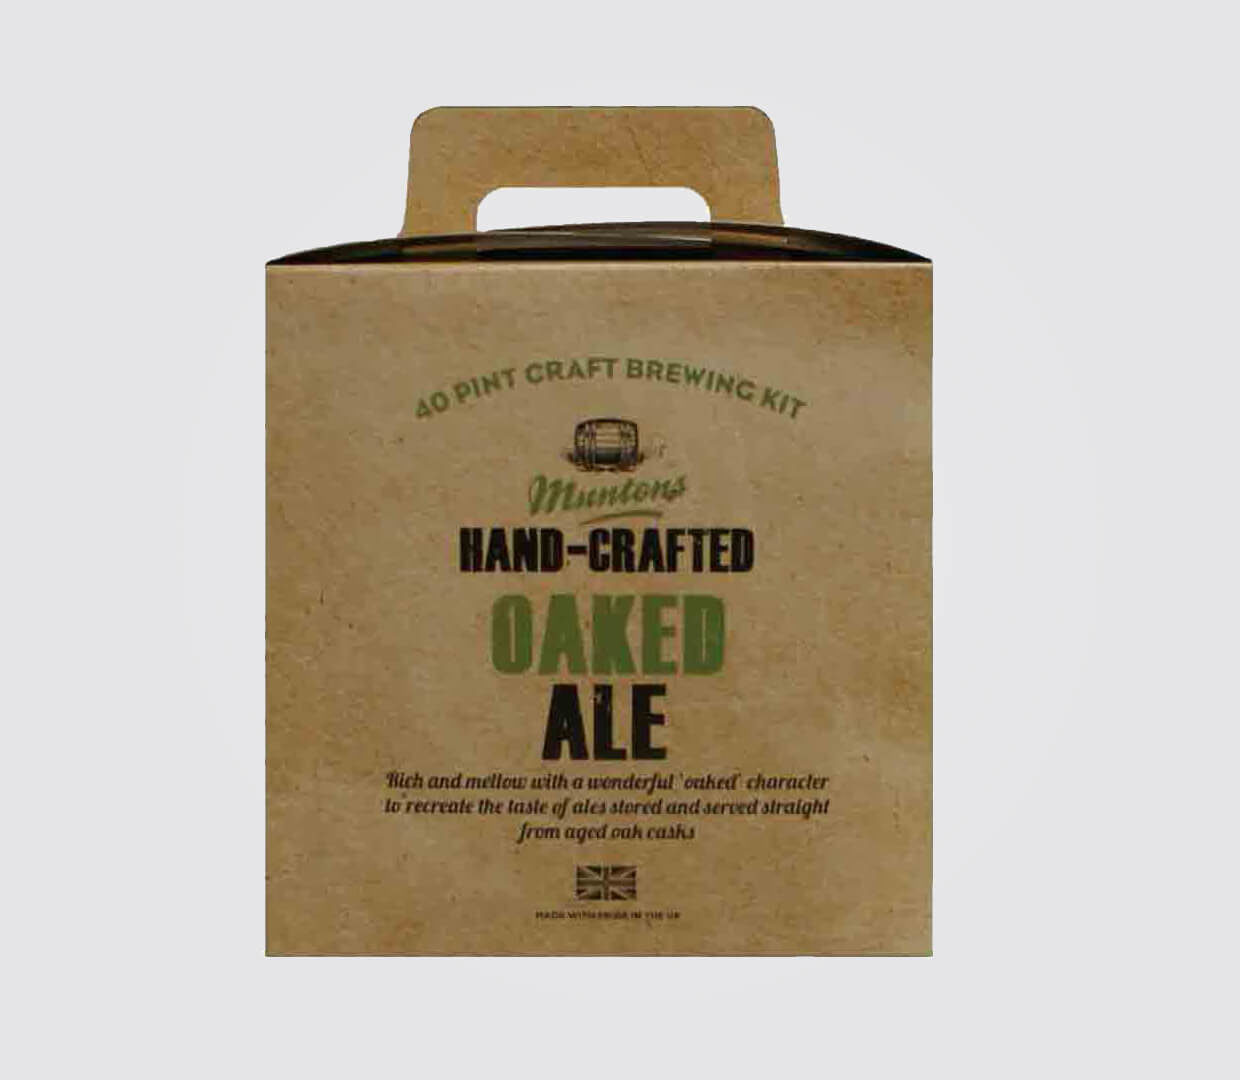 Oaked Ale